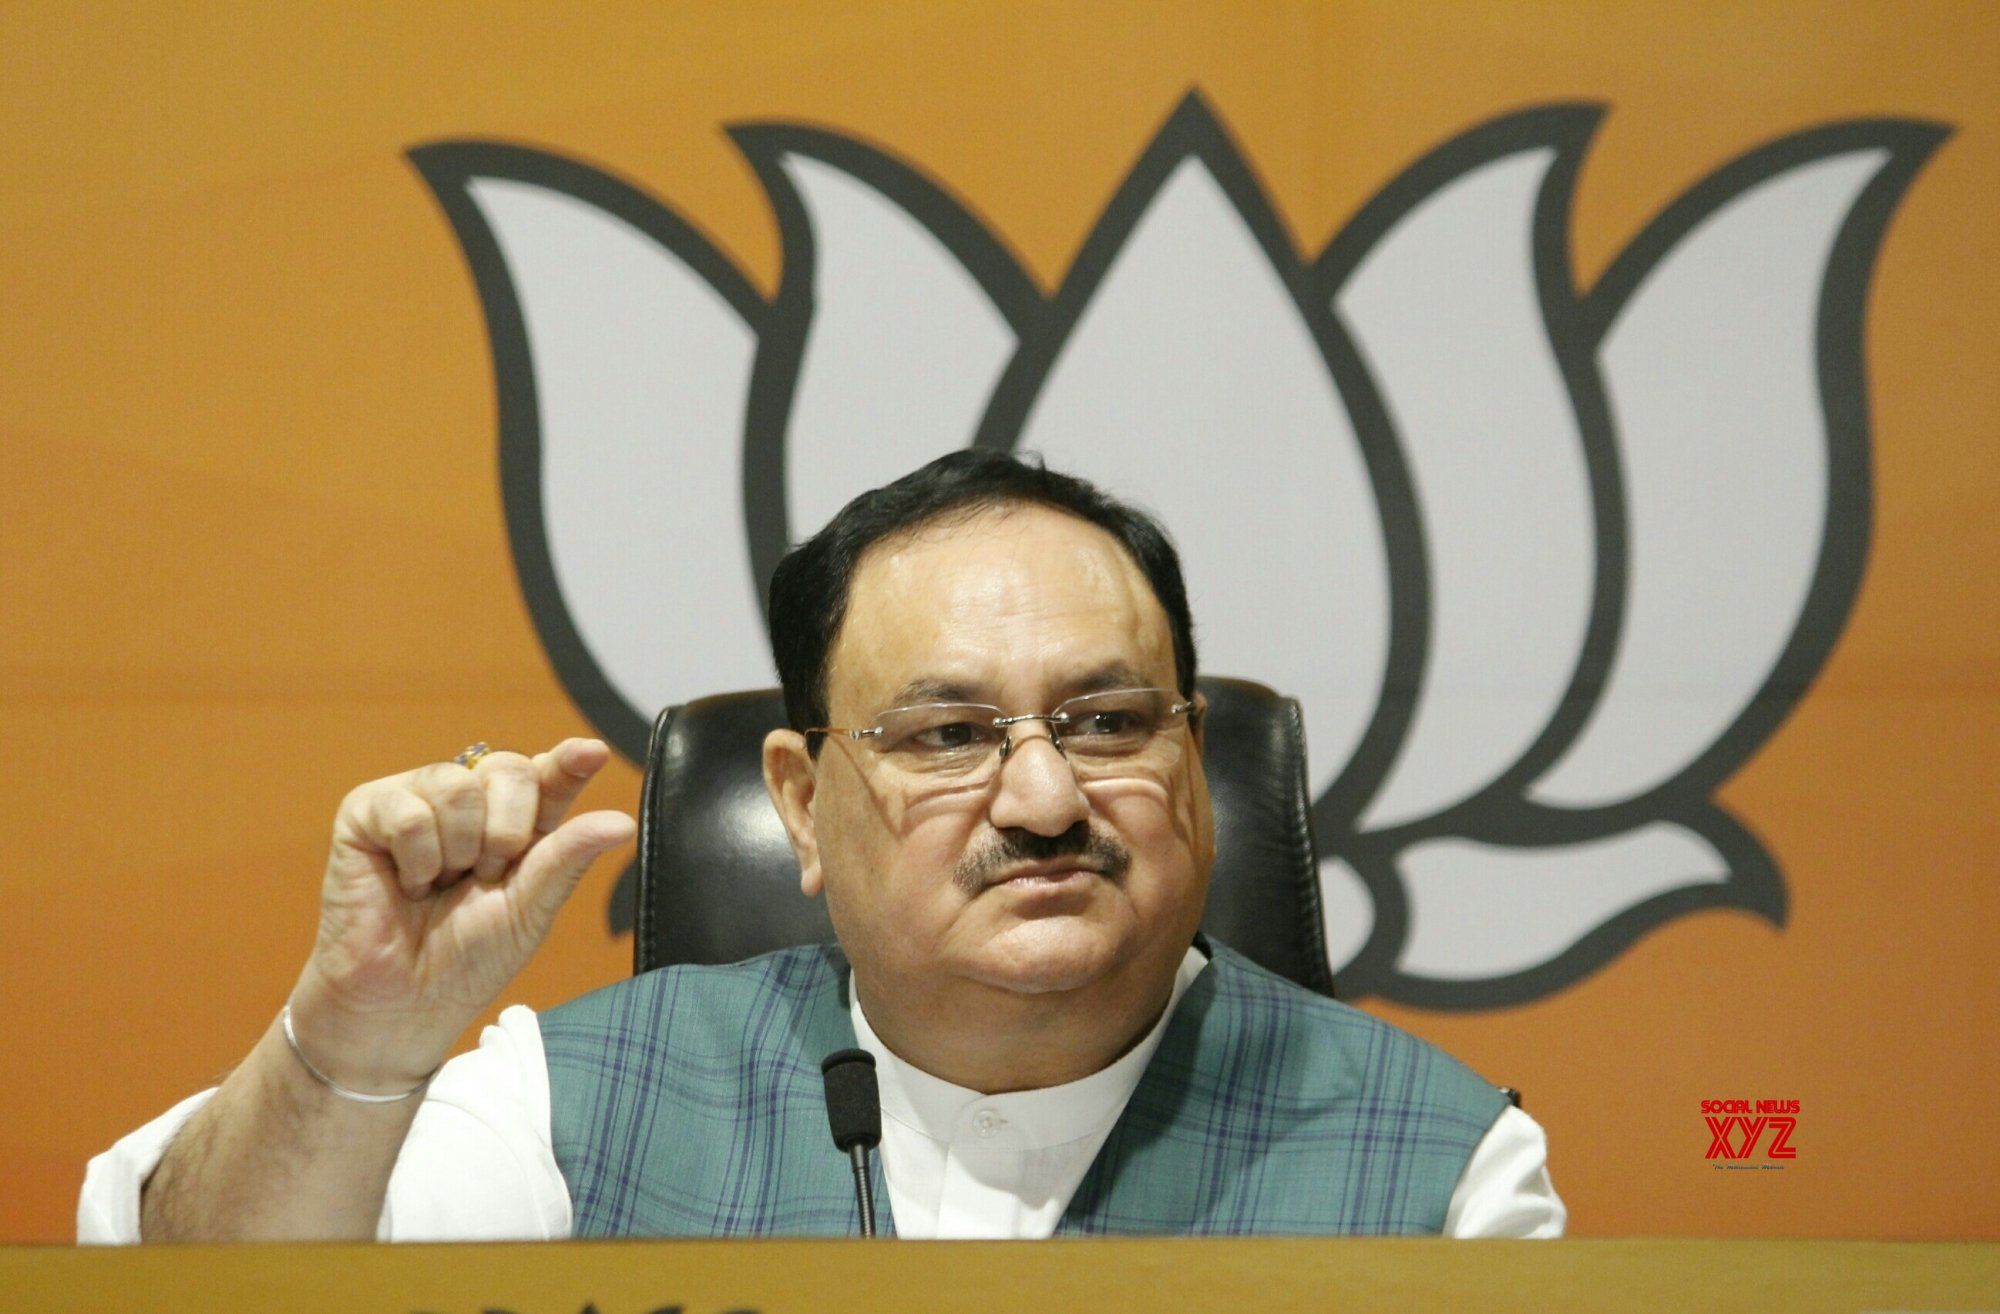 New Delhi: JP Nadda's press conference on three Bills on agriculture reforms introduced in Parliament #Gallery